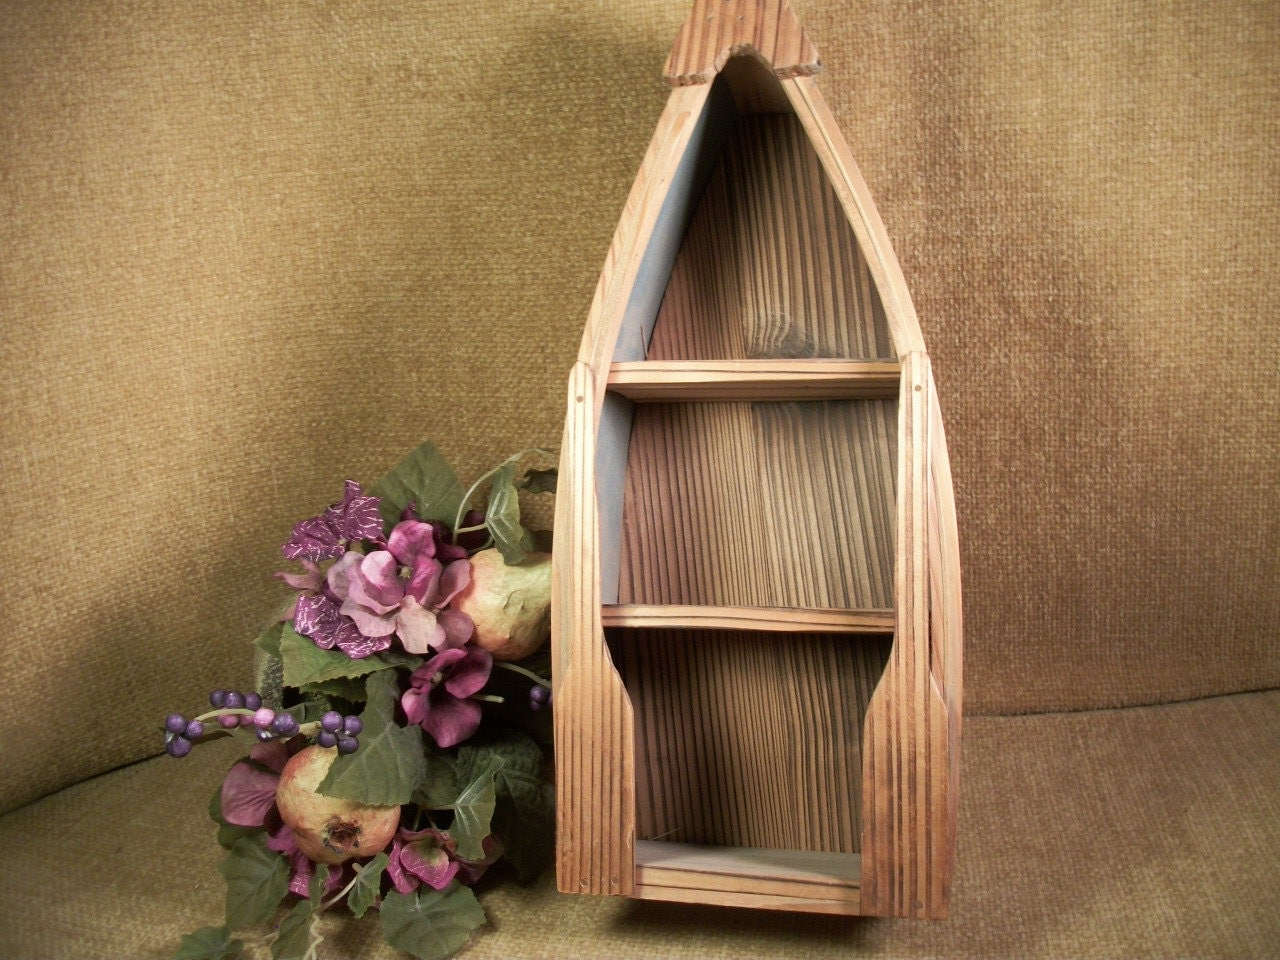 Wooden Boat Display Shelf Lodge Cabin Rustic Wall Hanging Home